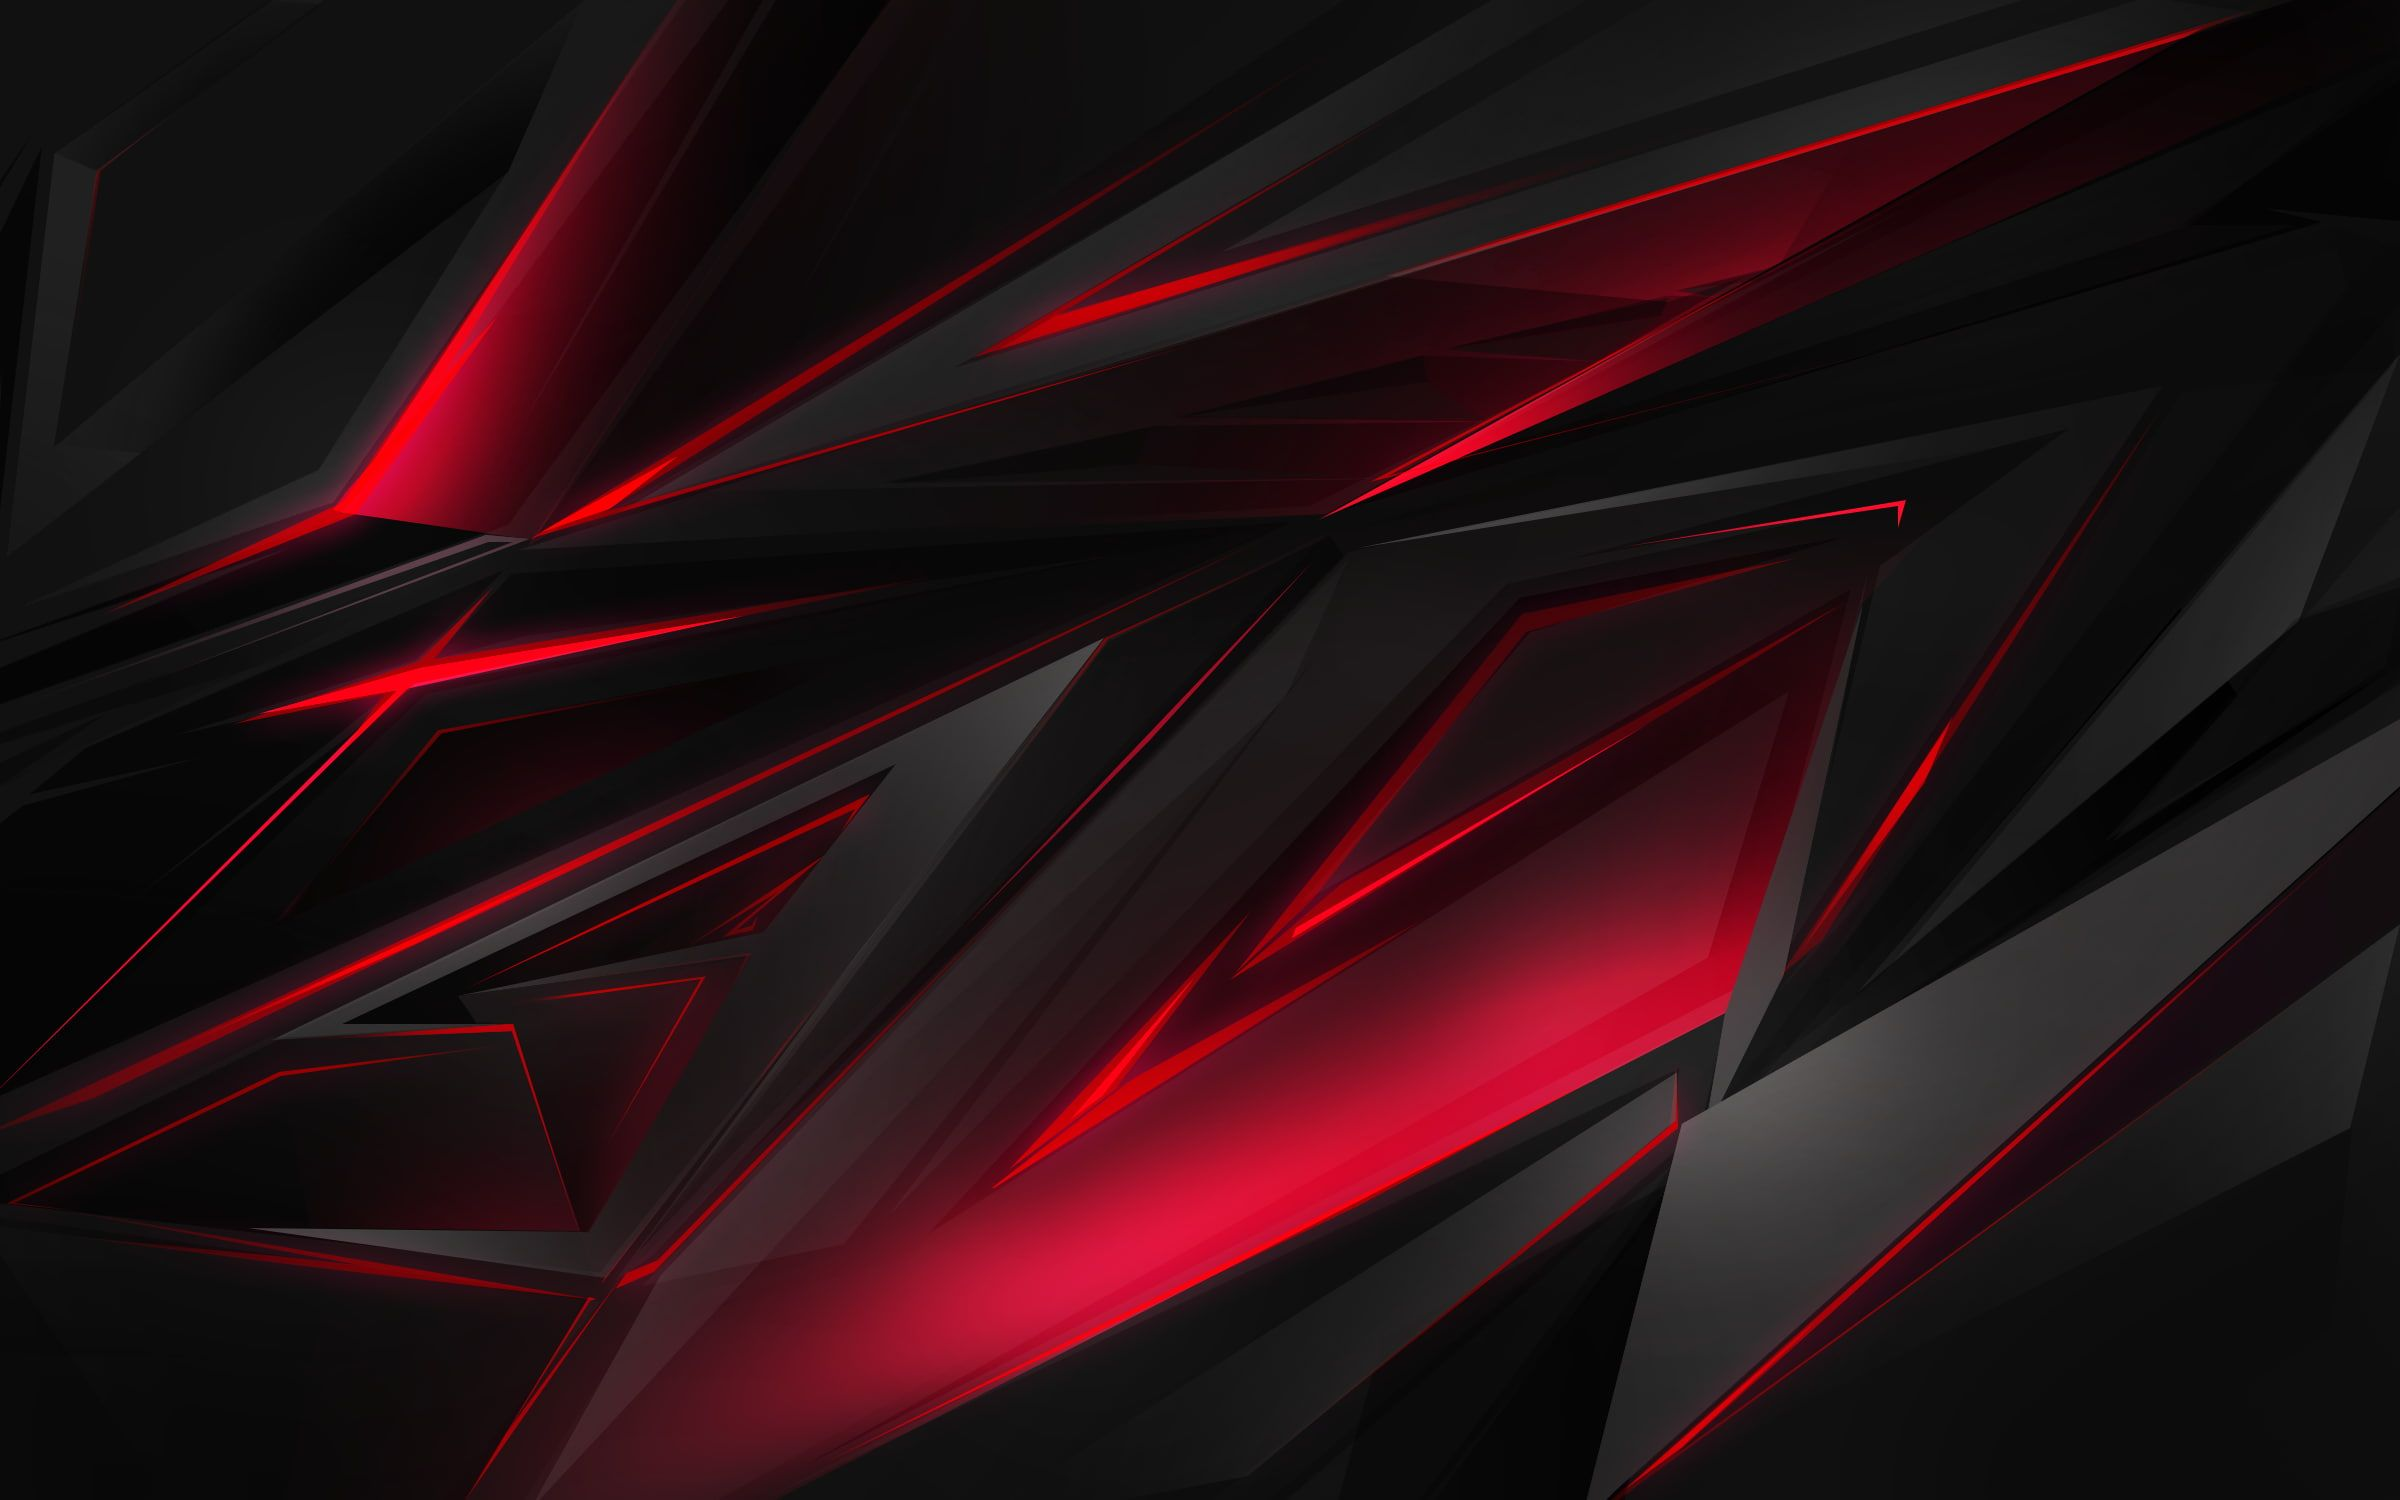 Abstract 3d Digital Art Dark Red Black 1080p Wallpaper Hdwallpaper Desktop Red And Black Wallpaper Red Wallpaper Abstract Iphone Wallpaper